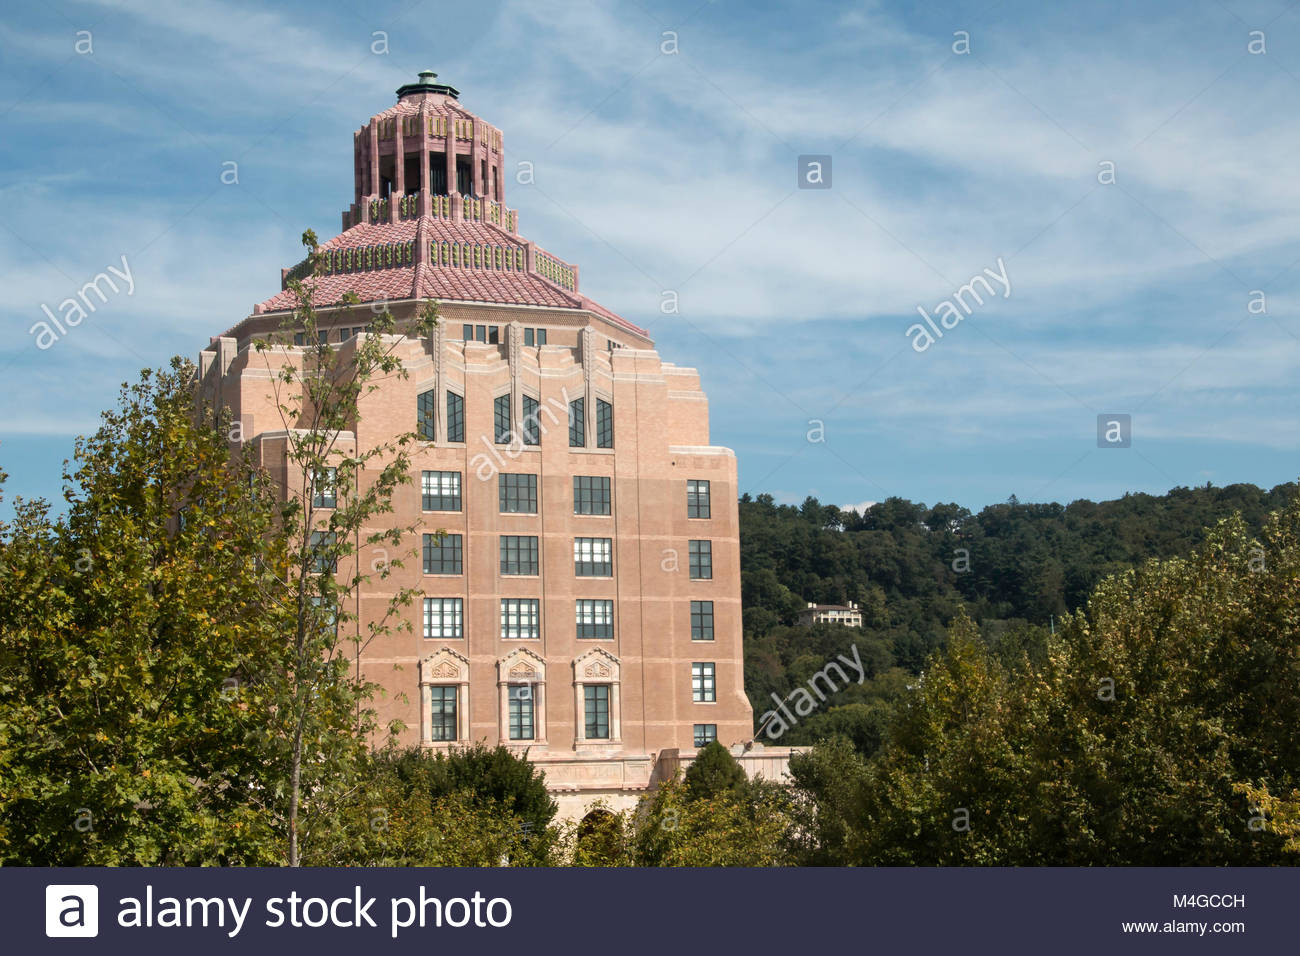 City Hall in Downtown Asheville, North Carolina - Stock Image